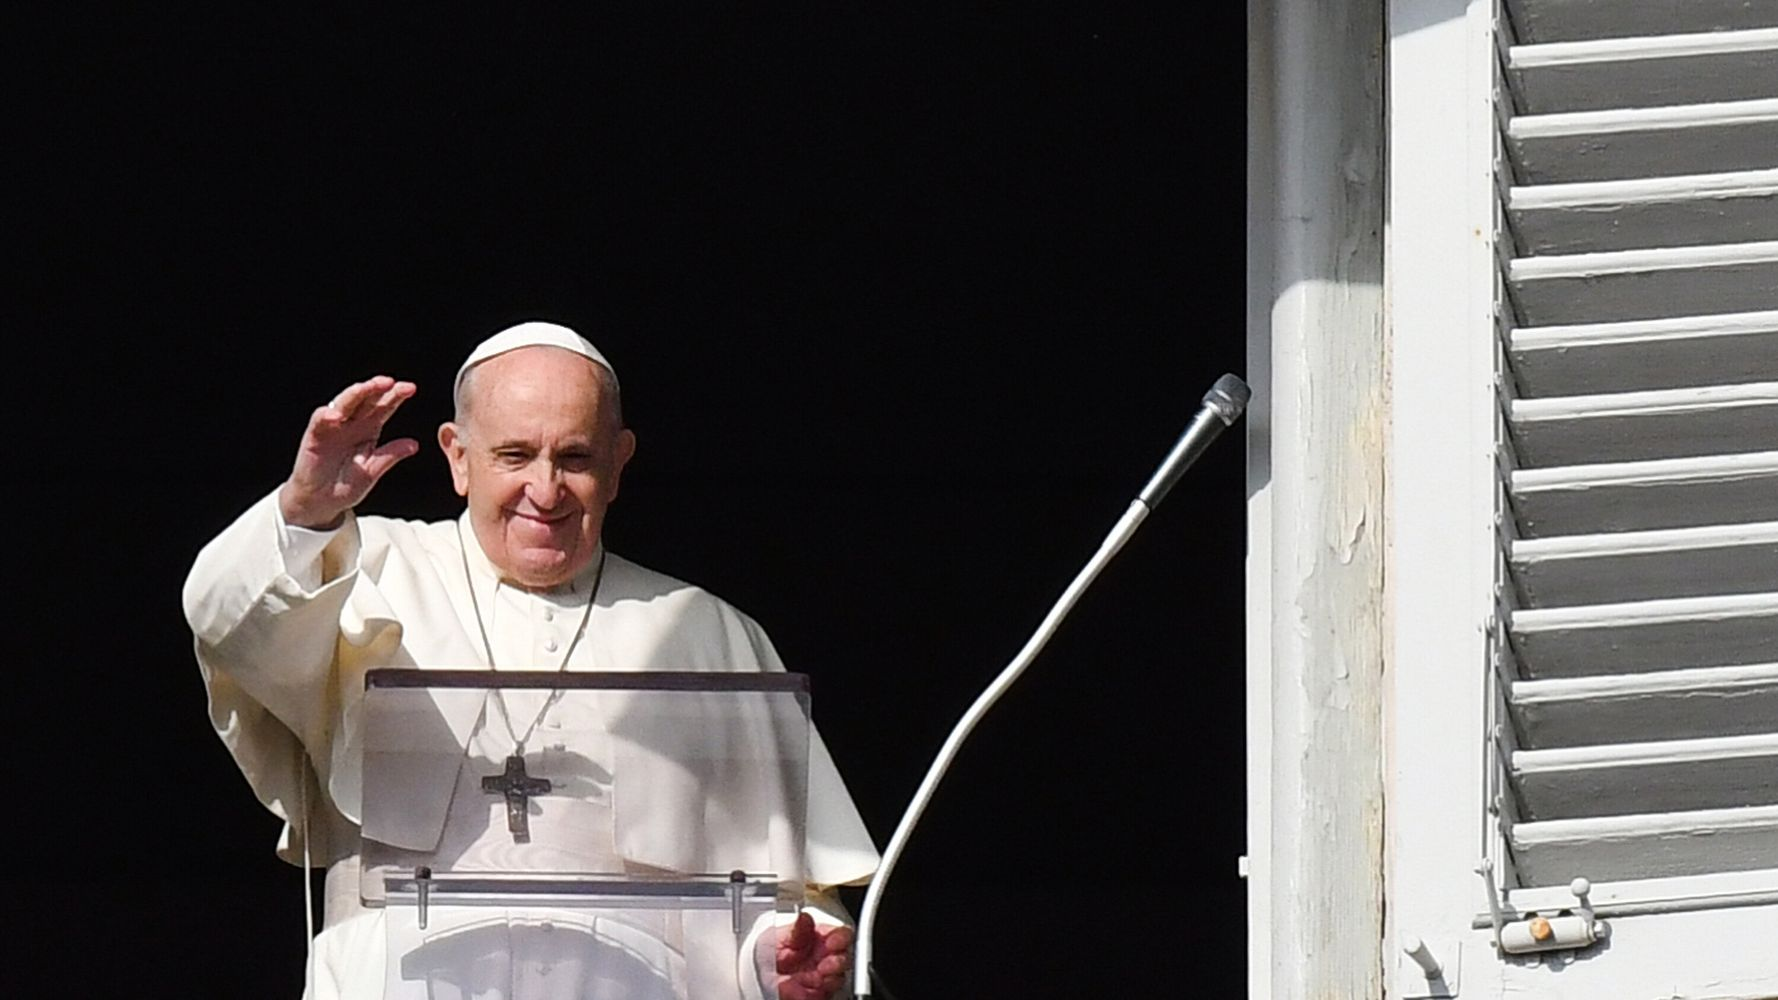 Vatican Wants Instagram To Explain Why The Pope's Account 'Liked' Photo Of Model